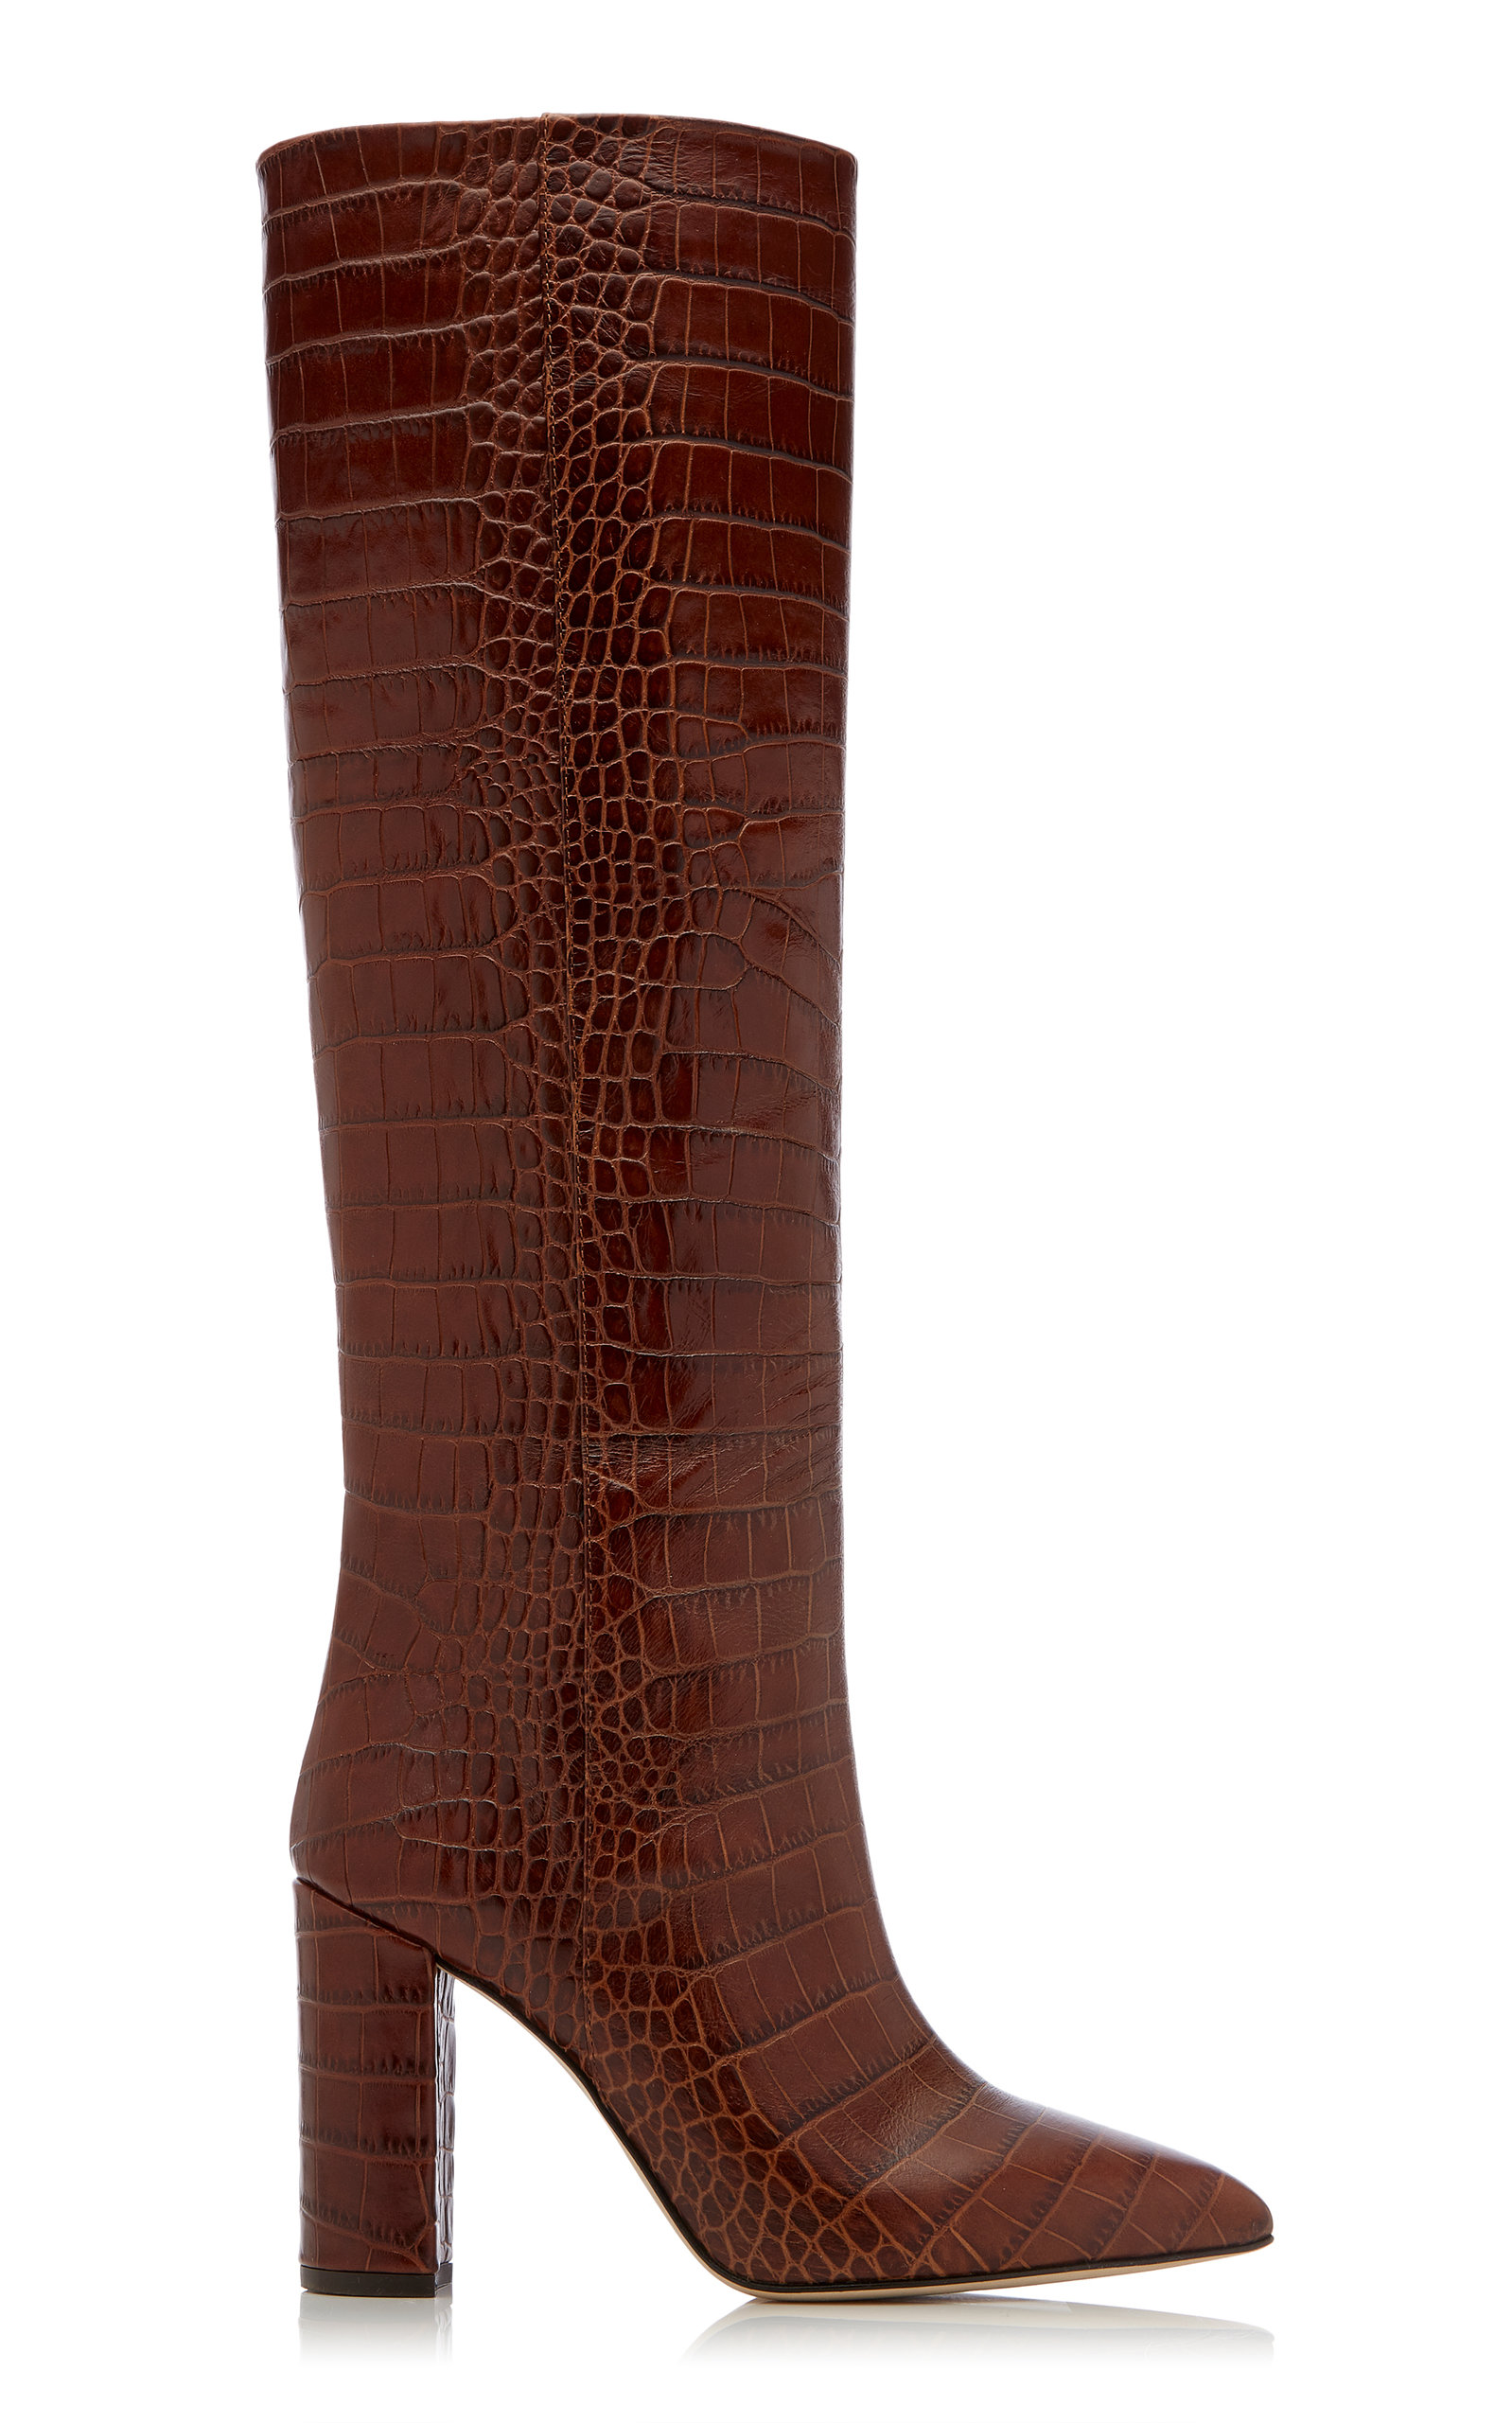 02a39f90edf Croc-Embossed Leather Knee Boots in Brown